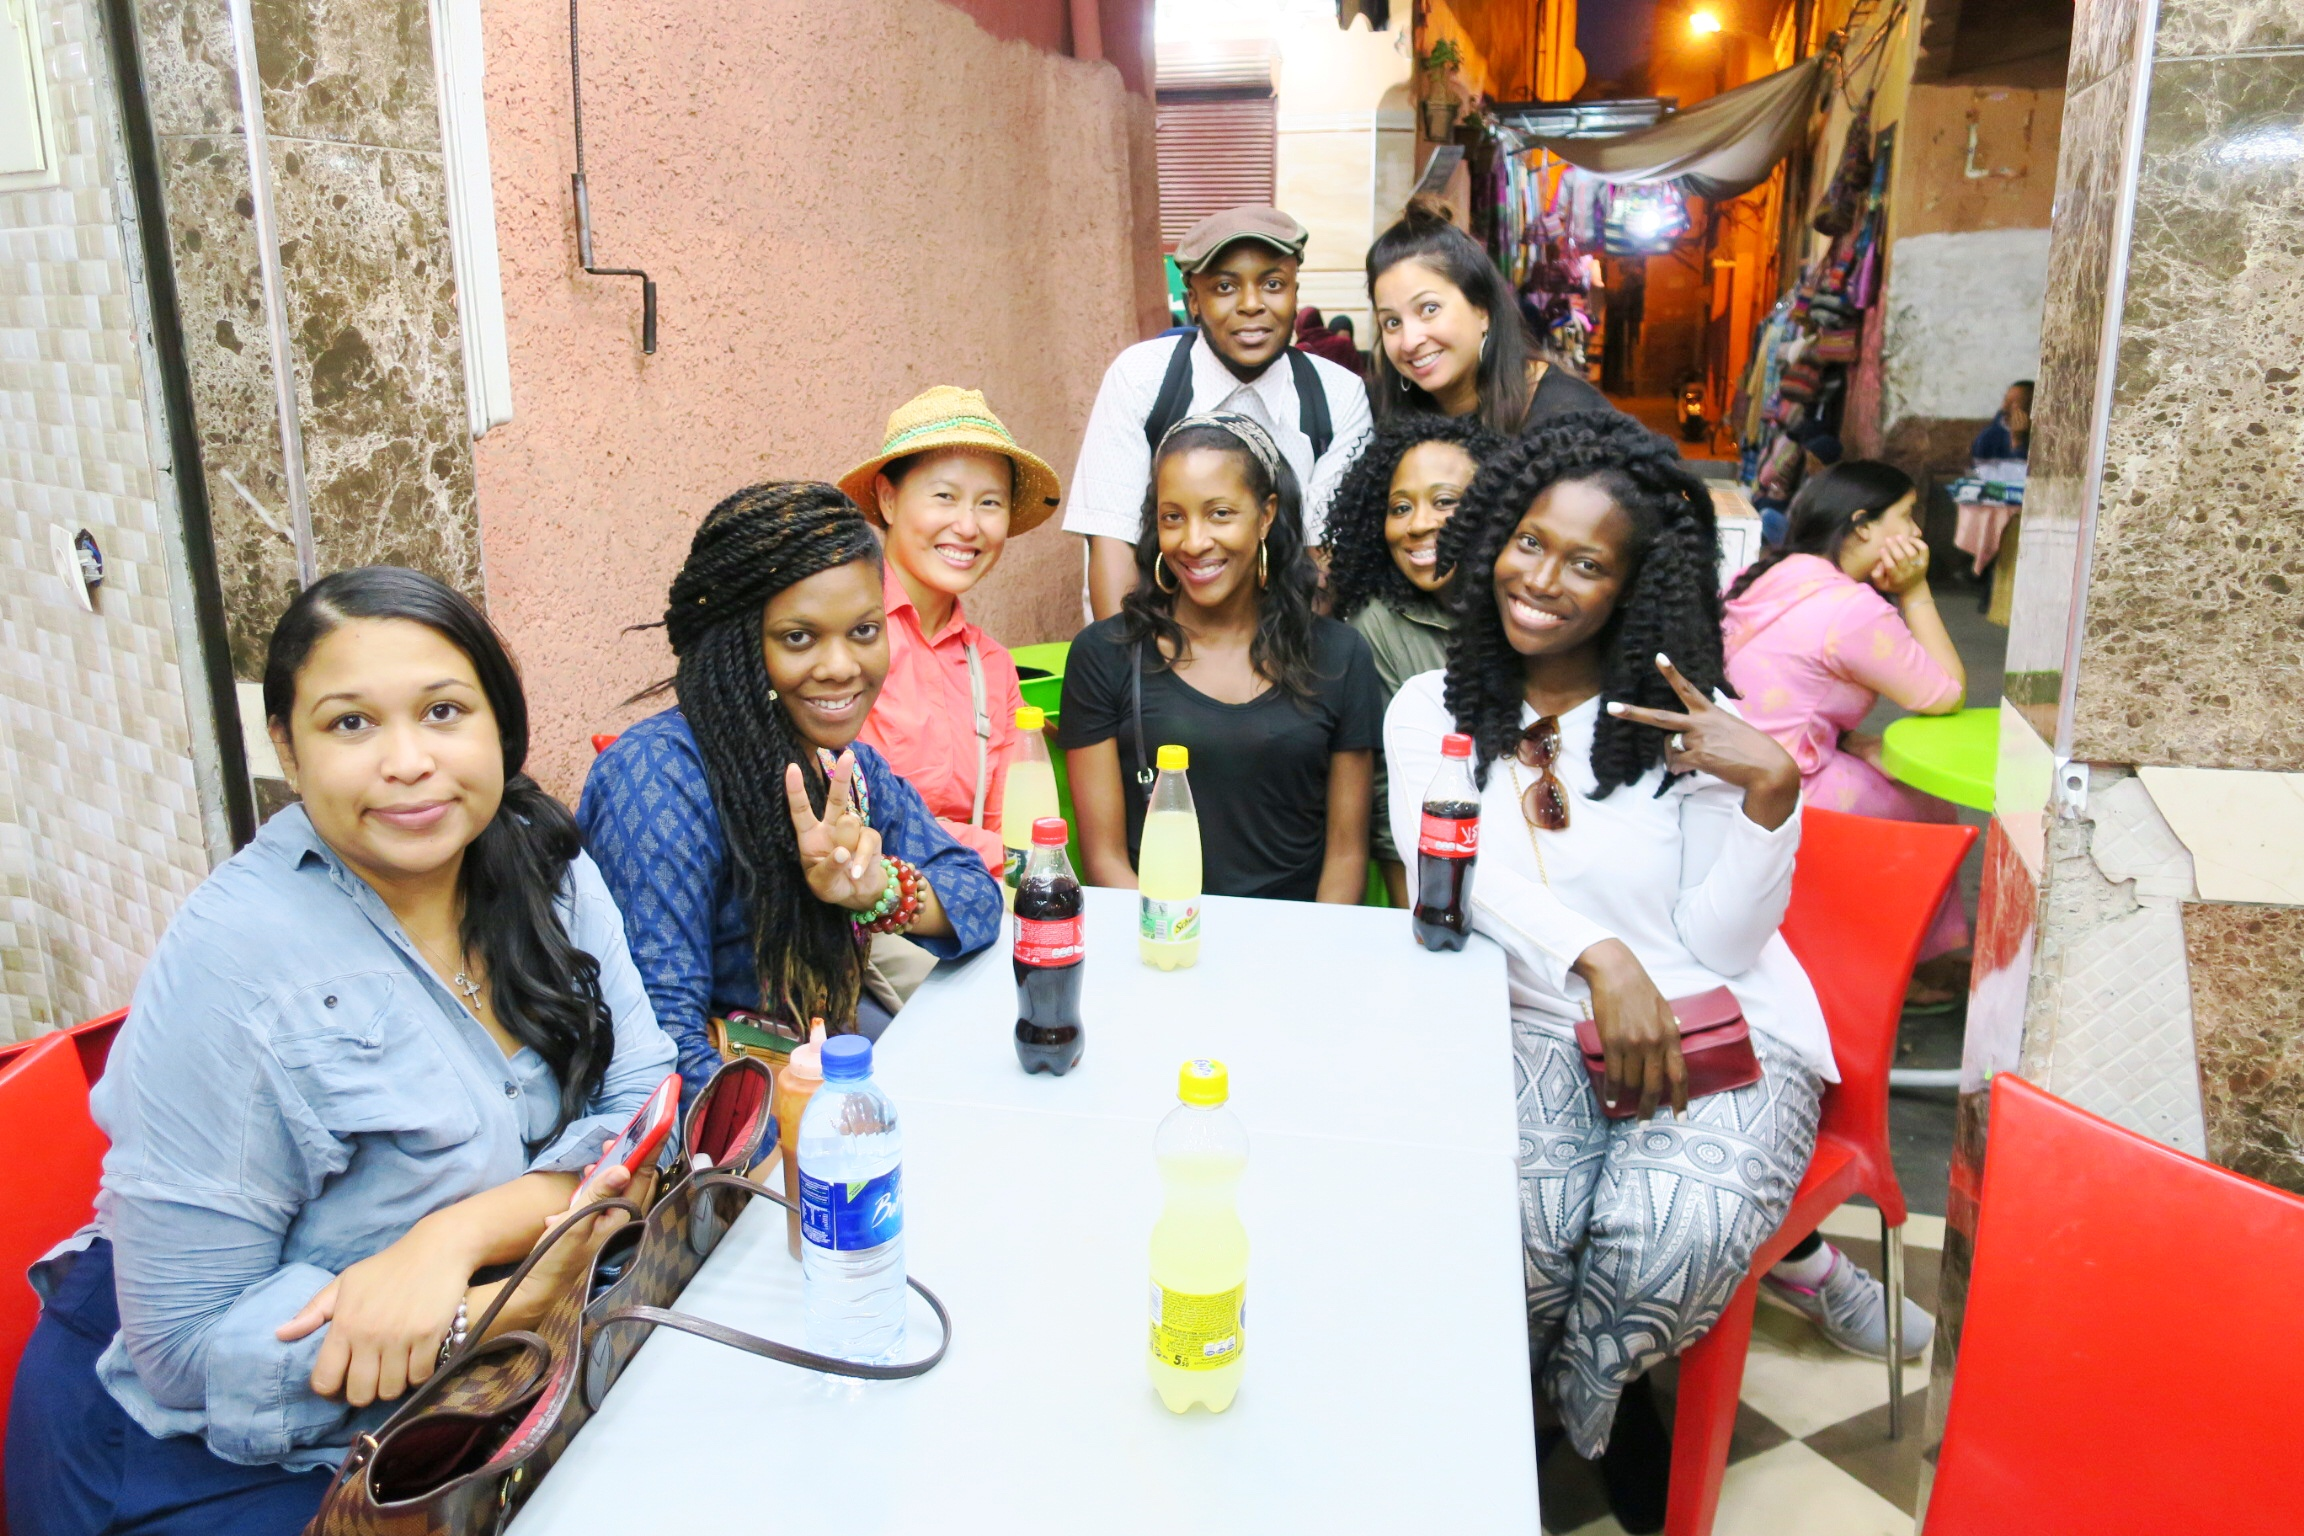 dayka-robinson-blog-lost-found-marrakech-solo-travel-group-travel-black-women-morocco-2016-food-tour